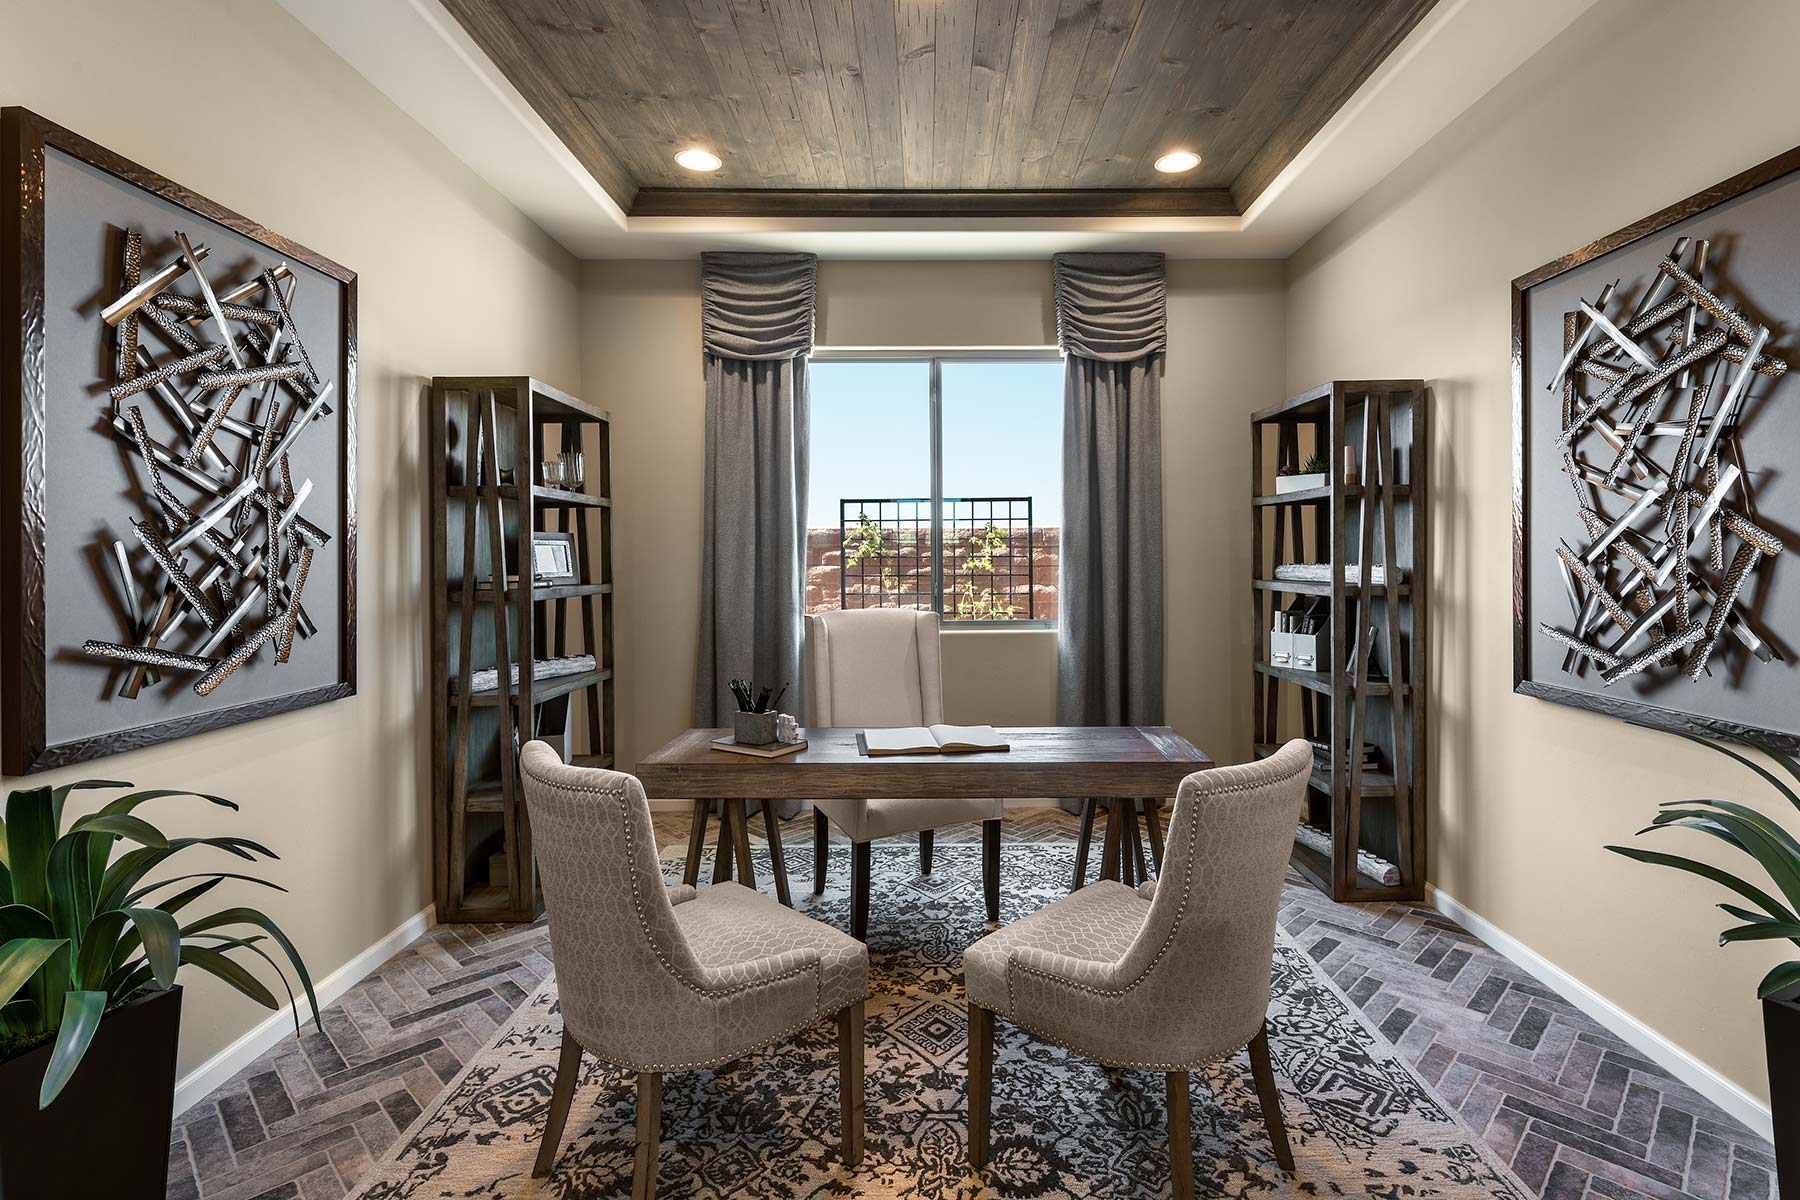 Aspect Plan Study Room at Viewpointe at Vistoso Trails in Oro Valley Arizona by Mattamy Homes